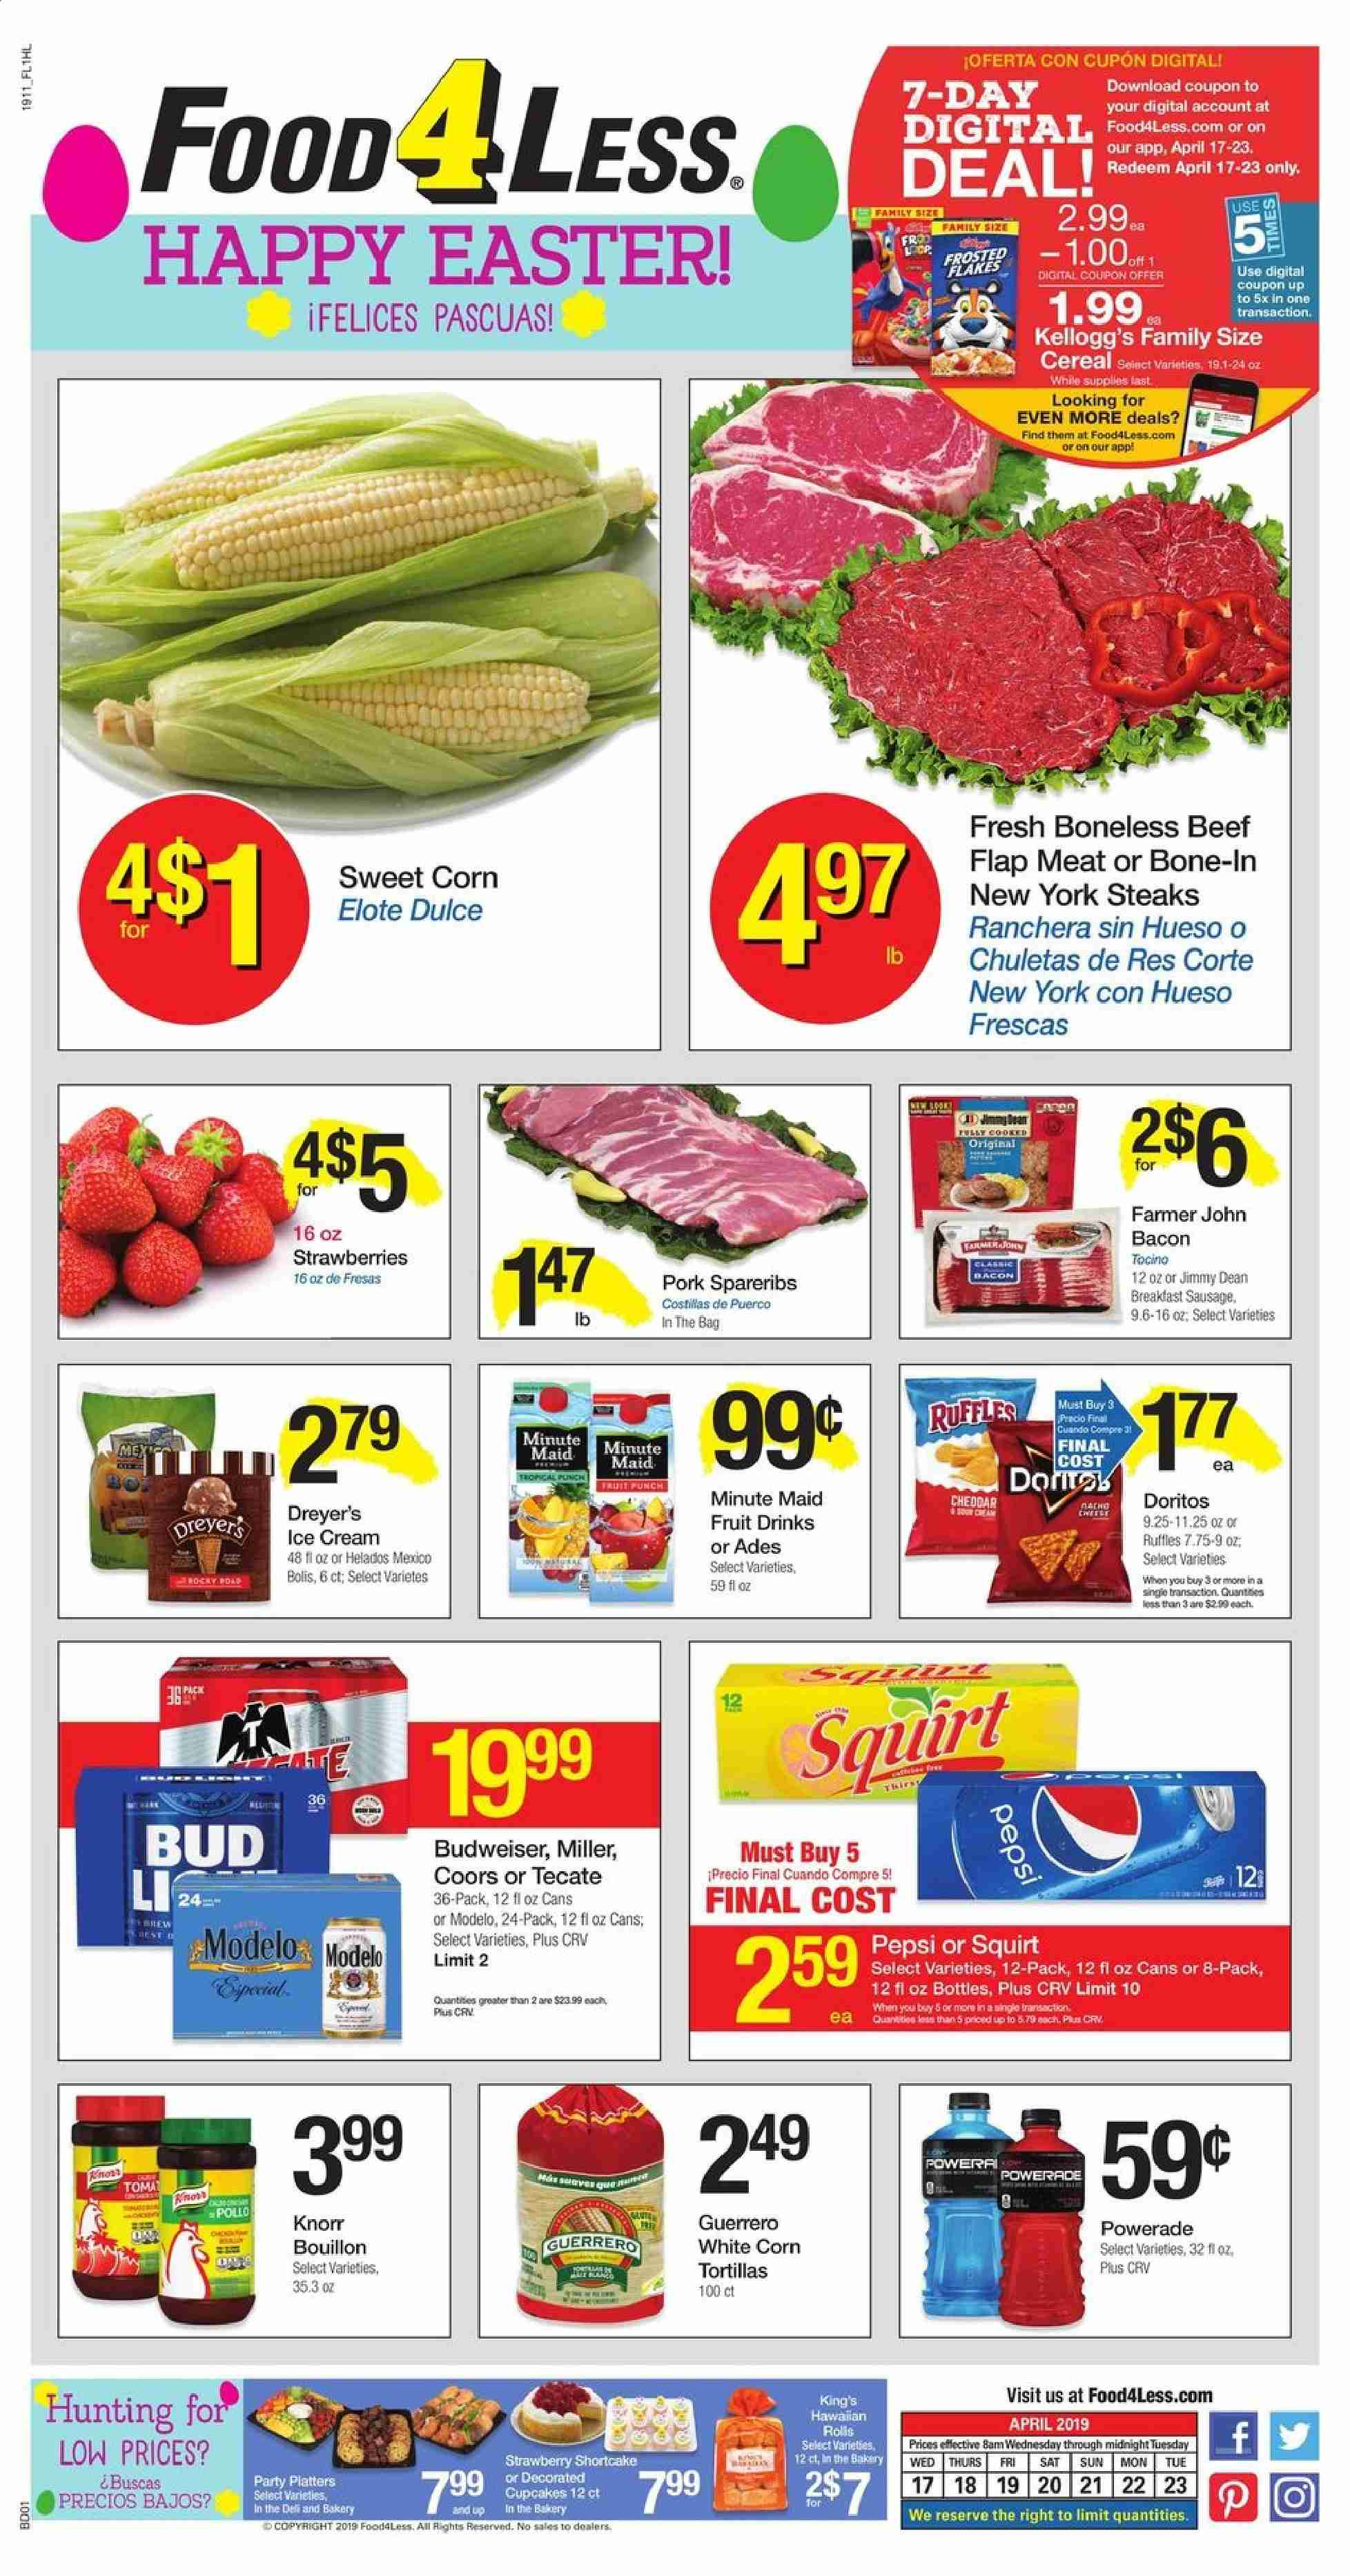 Food 4 Less Flyer - 04.17.2019 - 04.23.2019 - Sales products - Budweiser, Coors, corn, strawberries, tortillas, bacon, sausage, cheddar, ice cream, corn tortillas, Doritos, bouillon, cereals, Powerade, beef meat, pork meat, easter. Page 1.